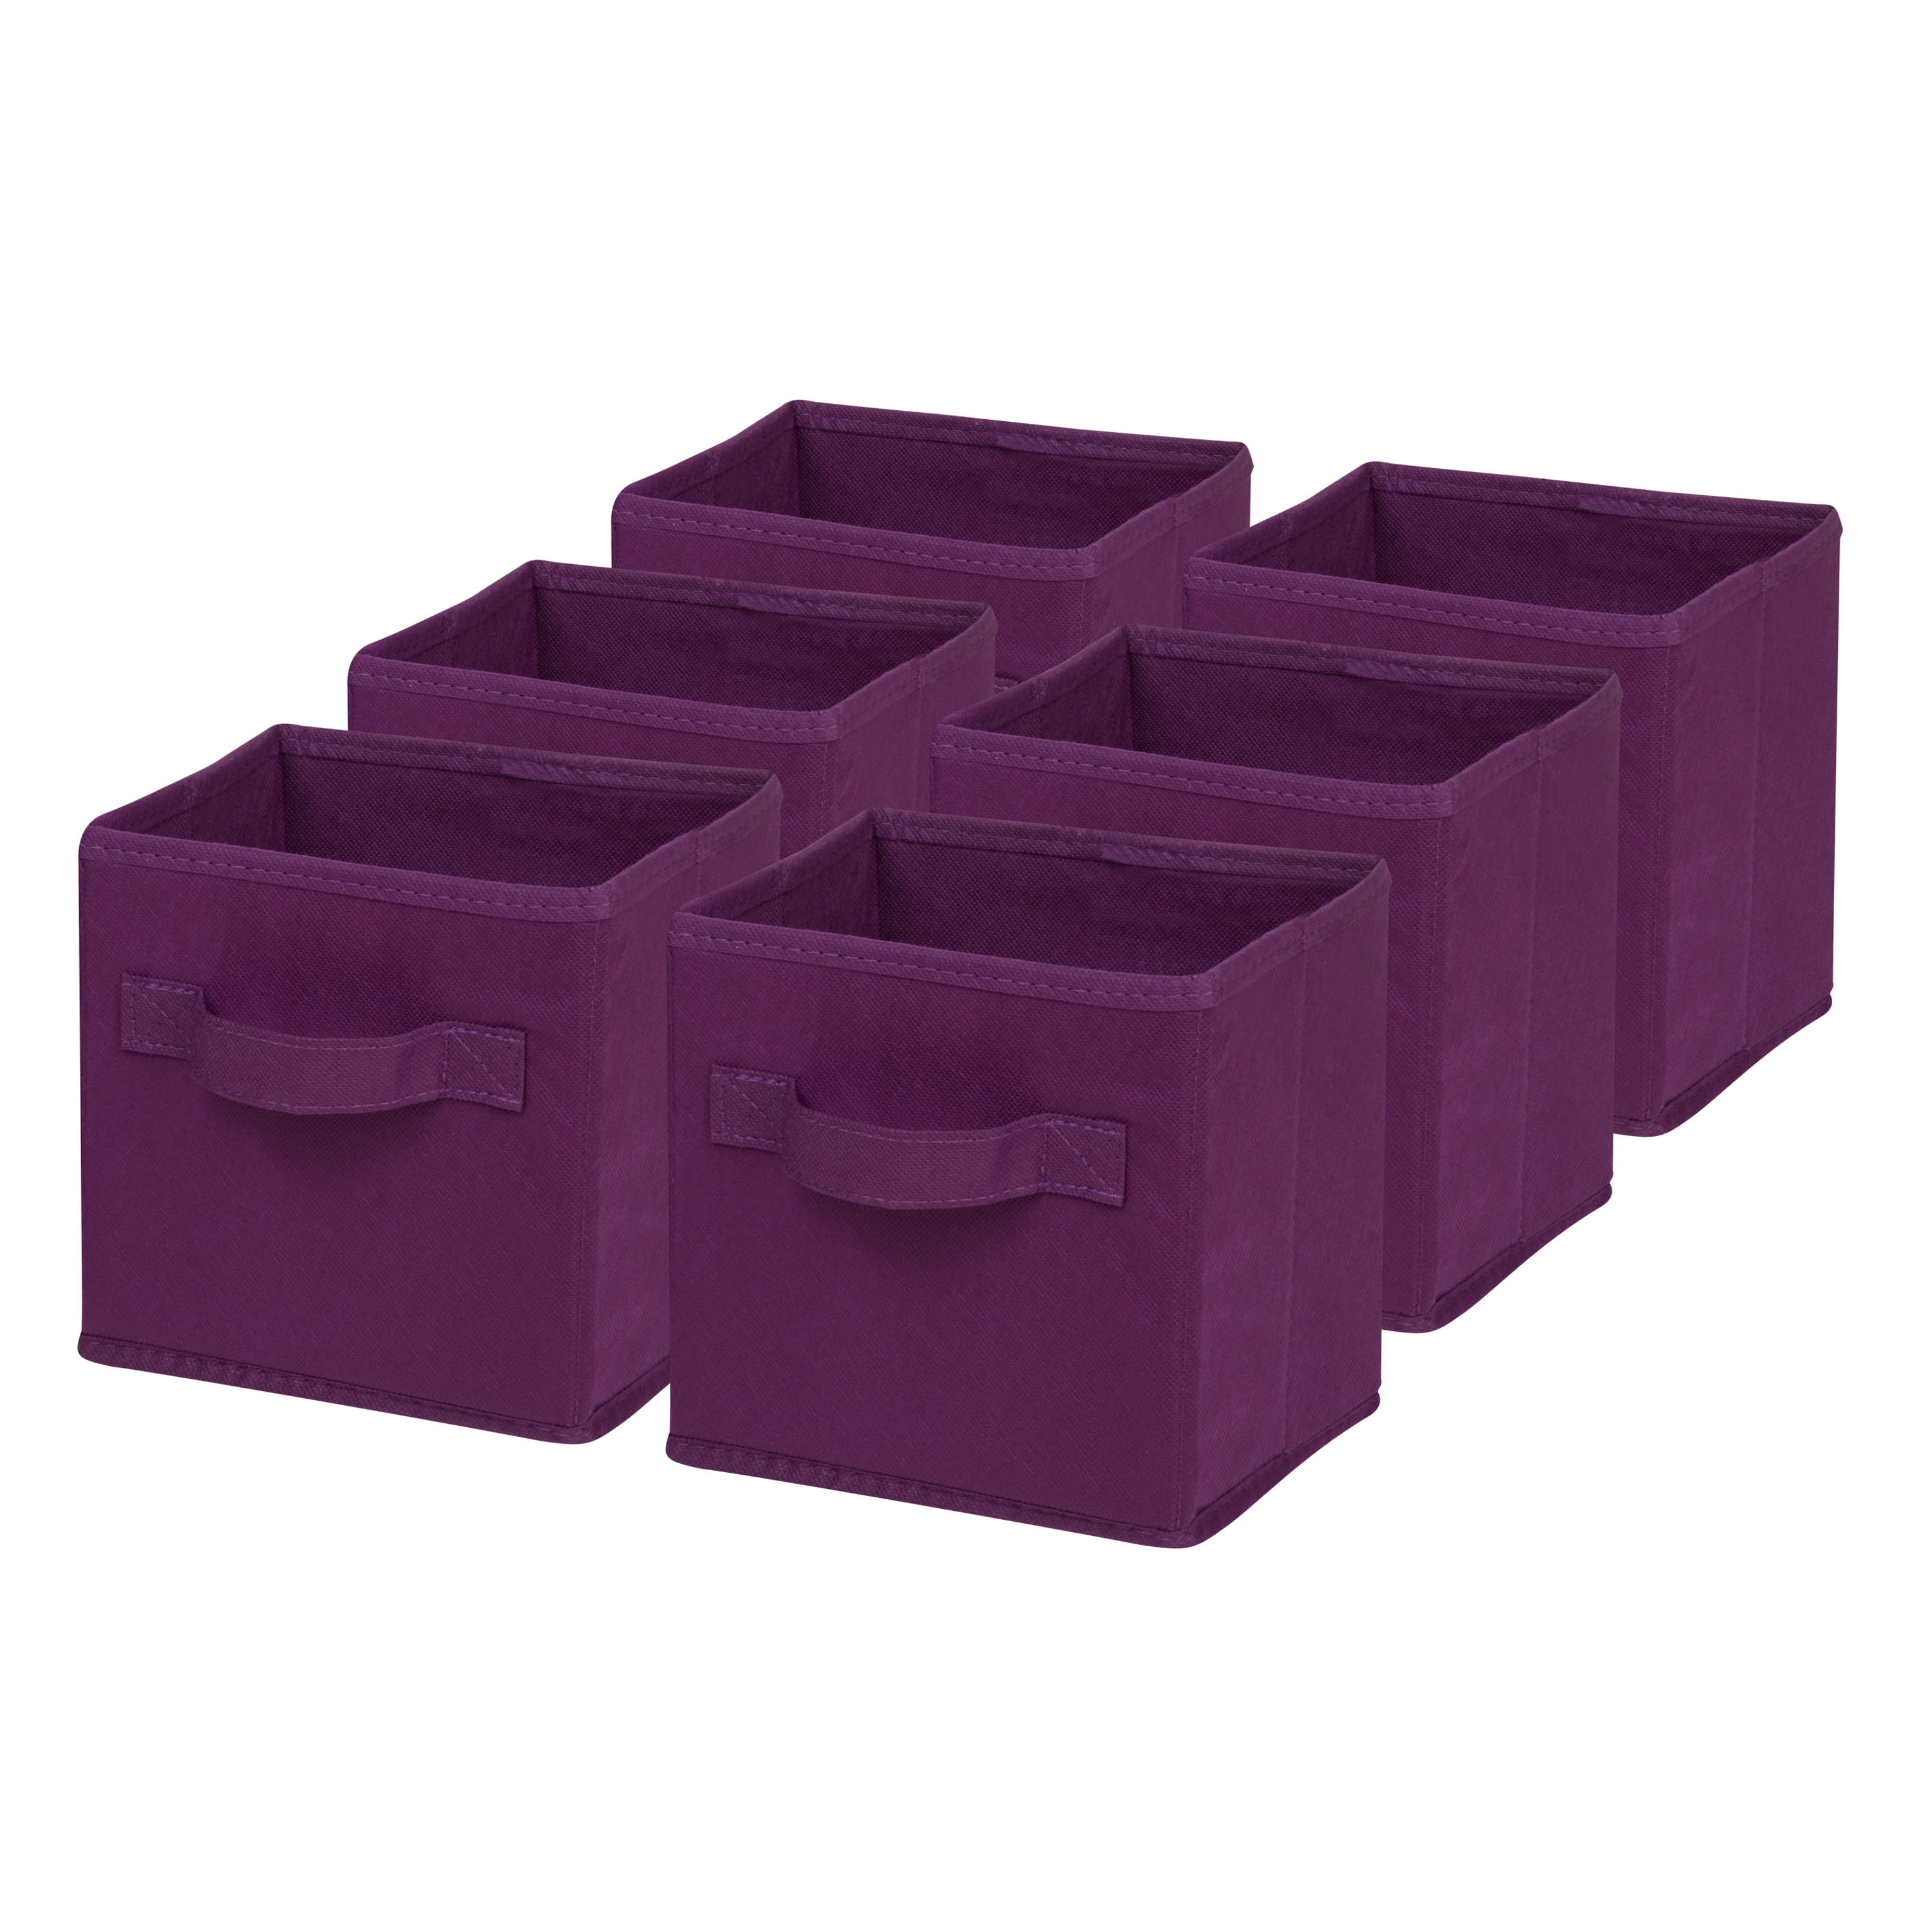 "Honey-Can-Do Mini Non-Woven Foldable Cubes, 7""H x 5 3/4""W x 7""D, Purple, Pack Of 6"